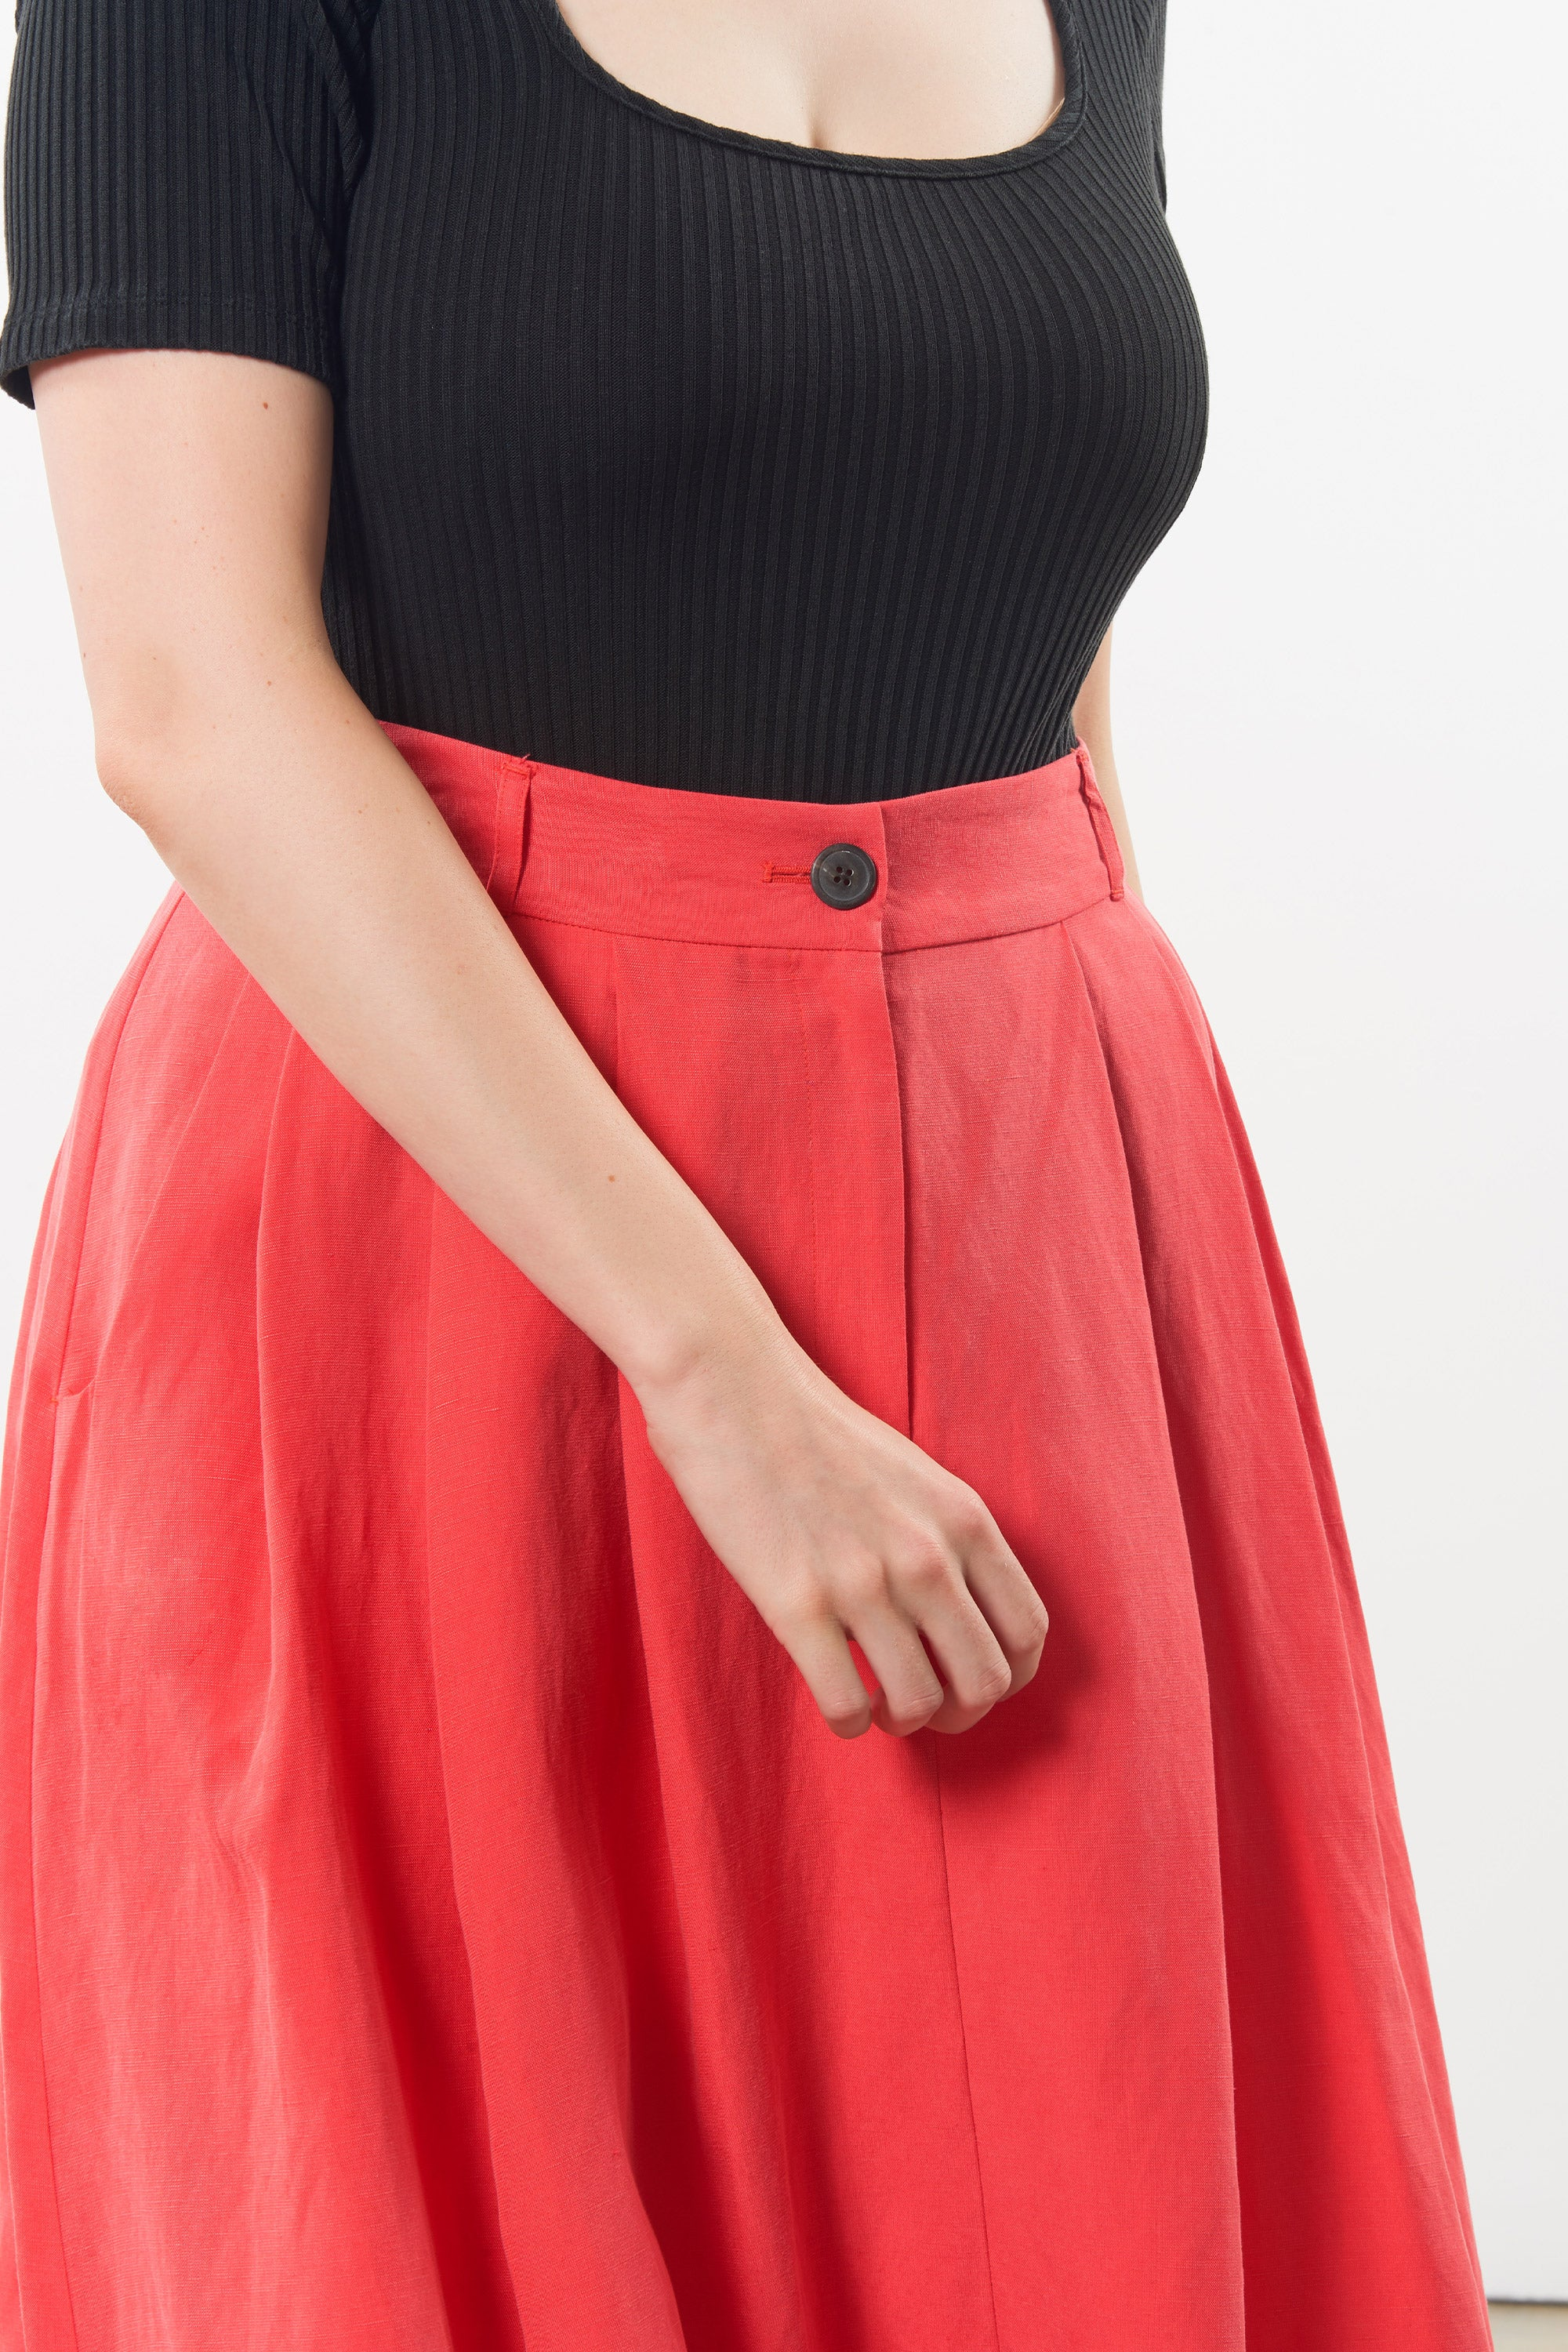 Mara Hoffman Extended Red Tulay Skirt in tencel lyocell and linen (waist detail)